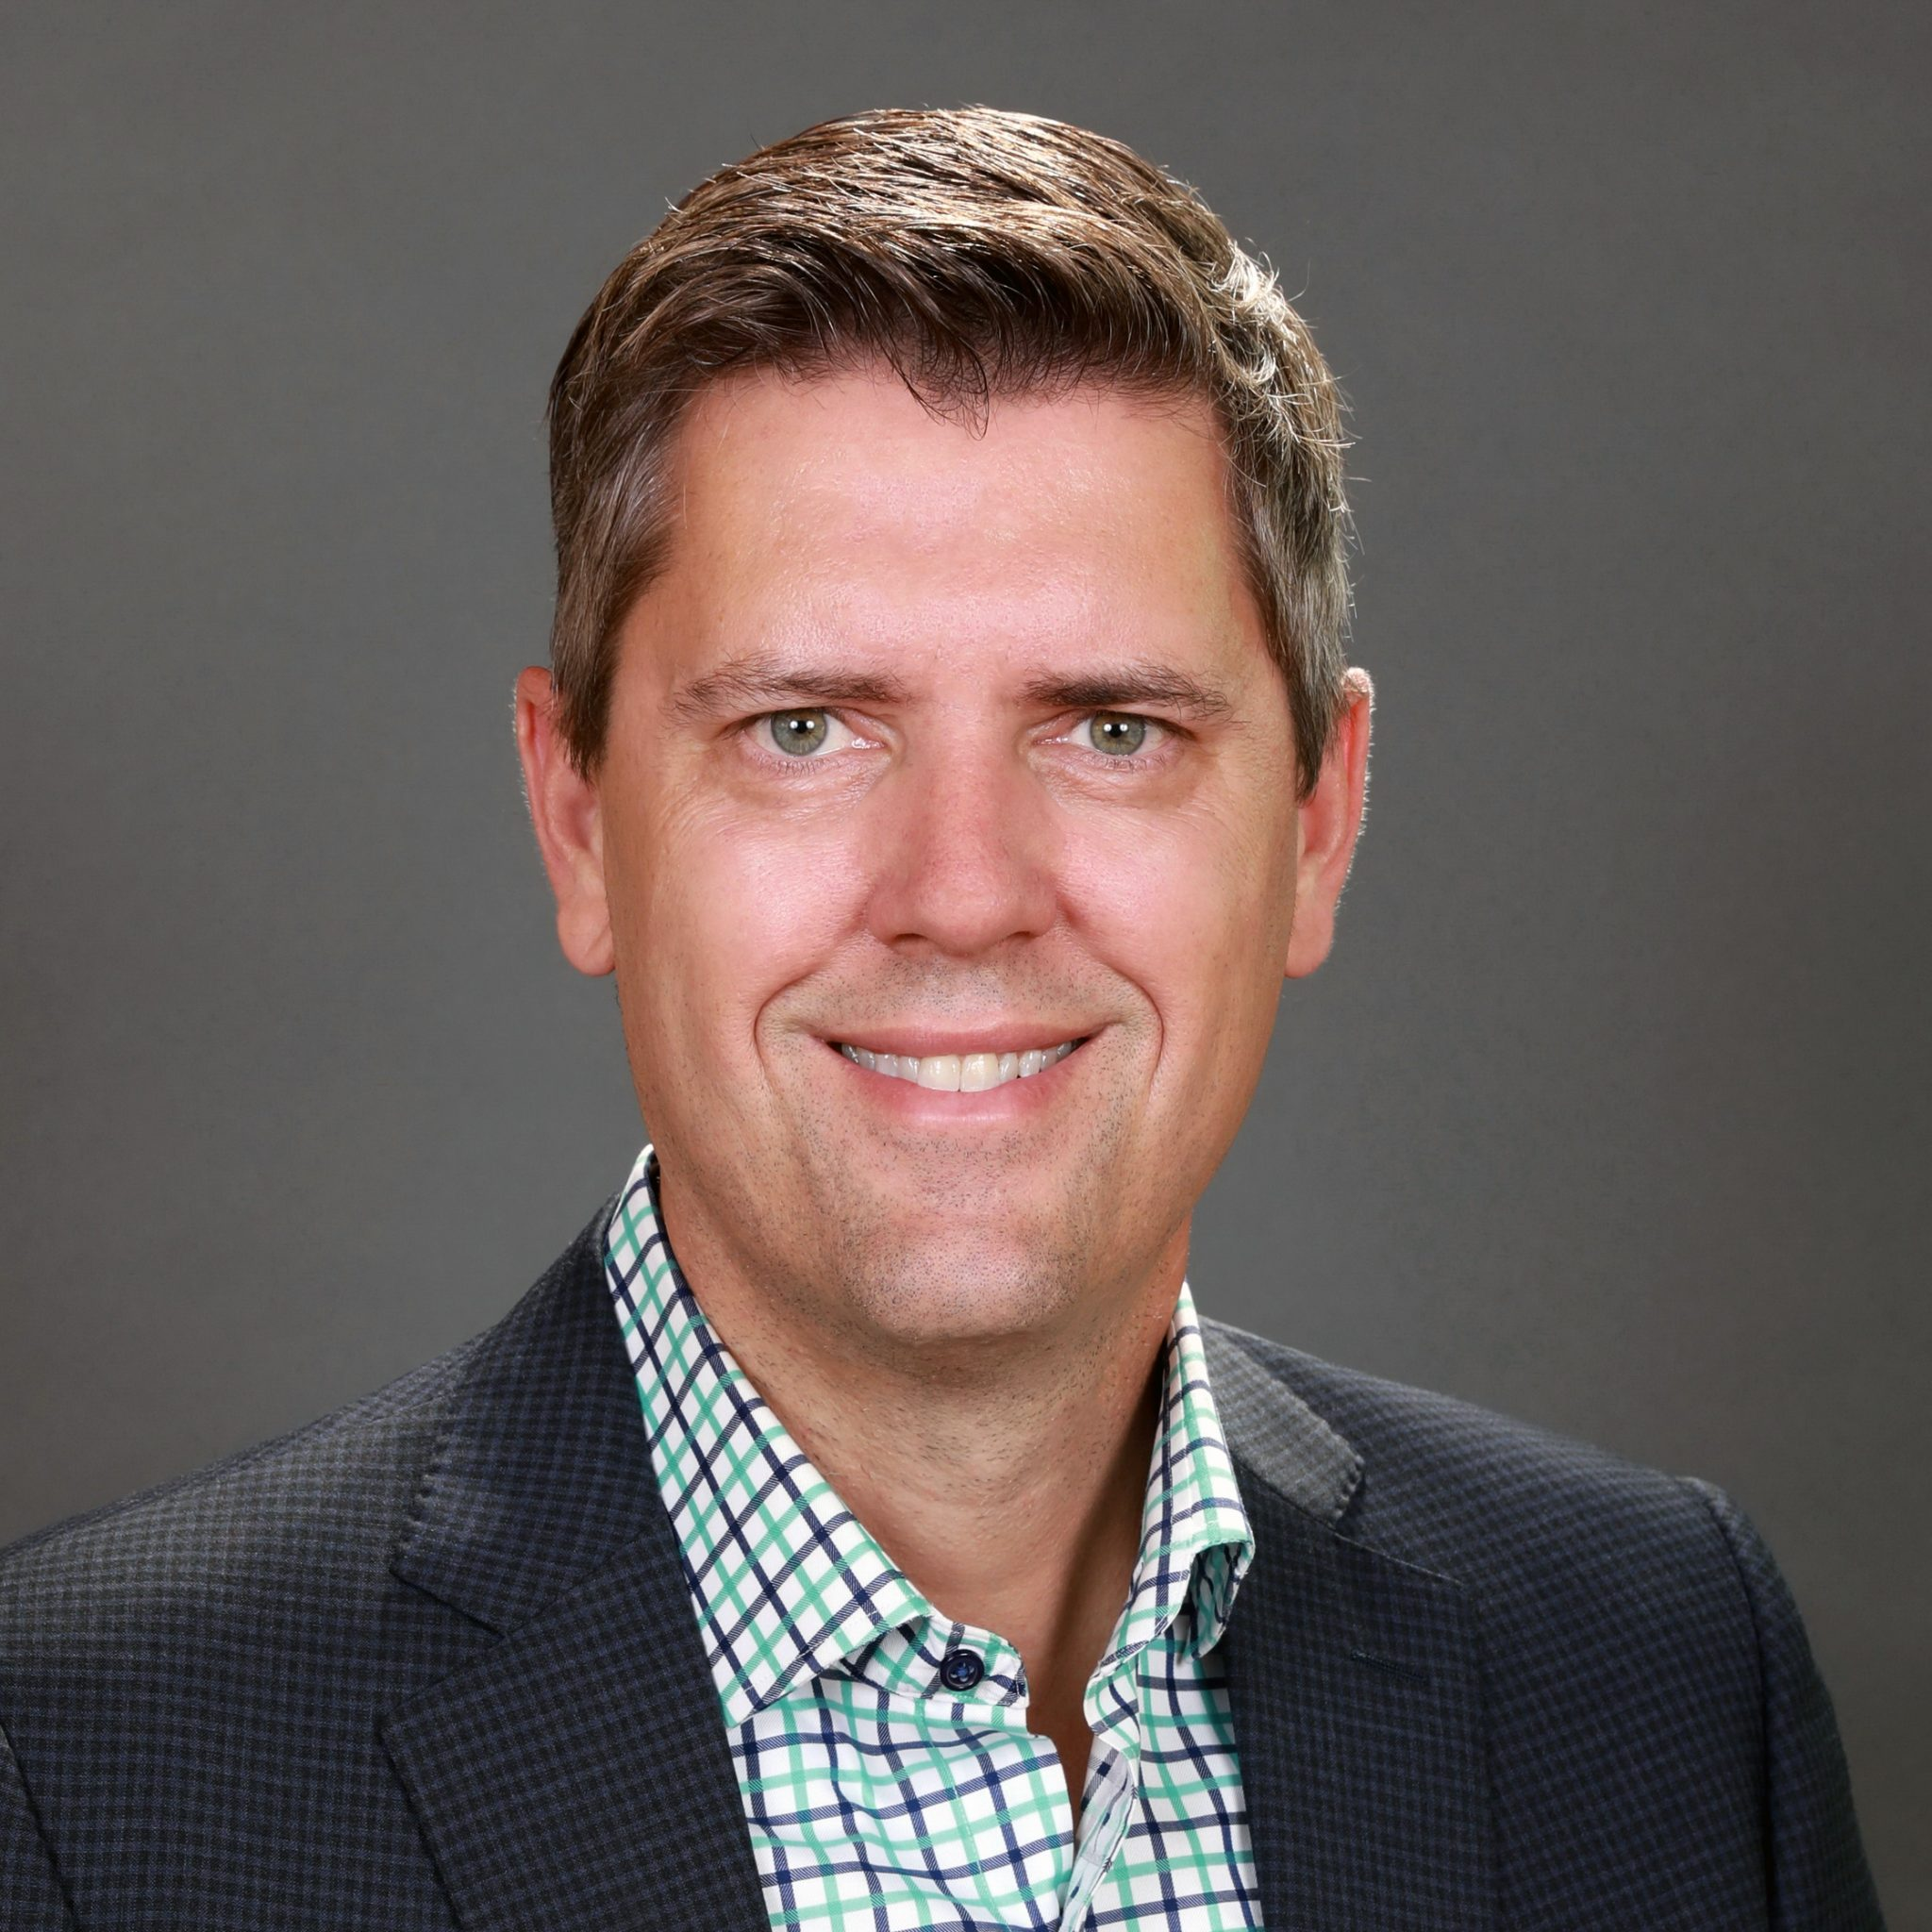 Aaron Stone, InterVision President and CEO